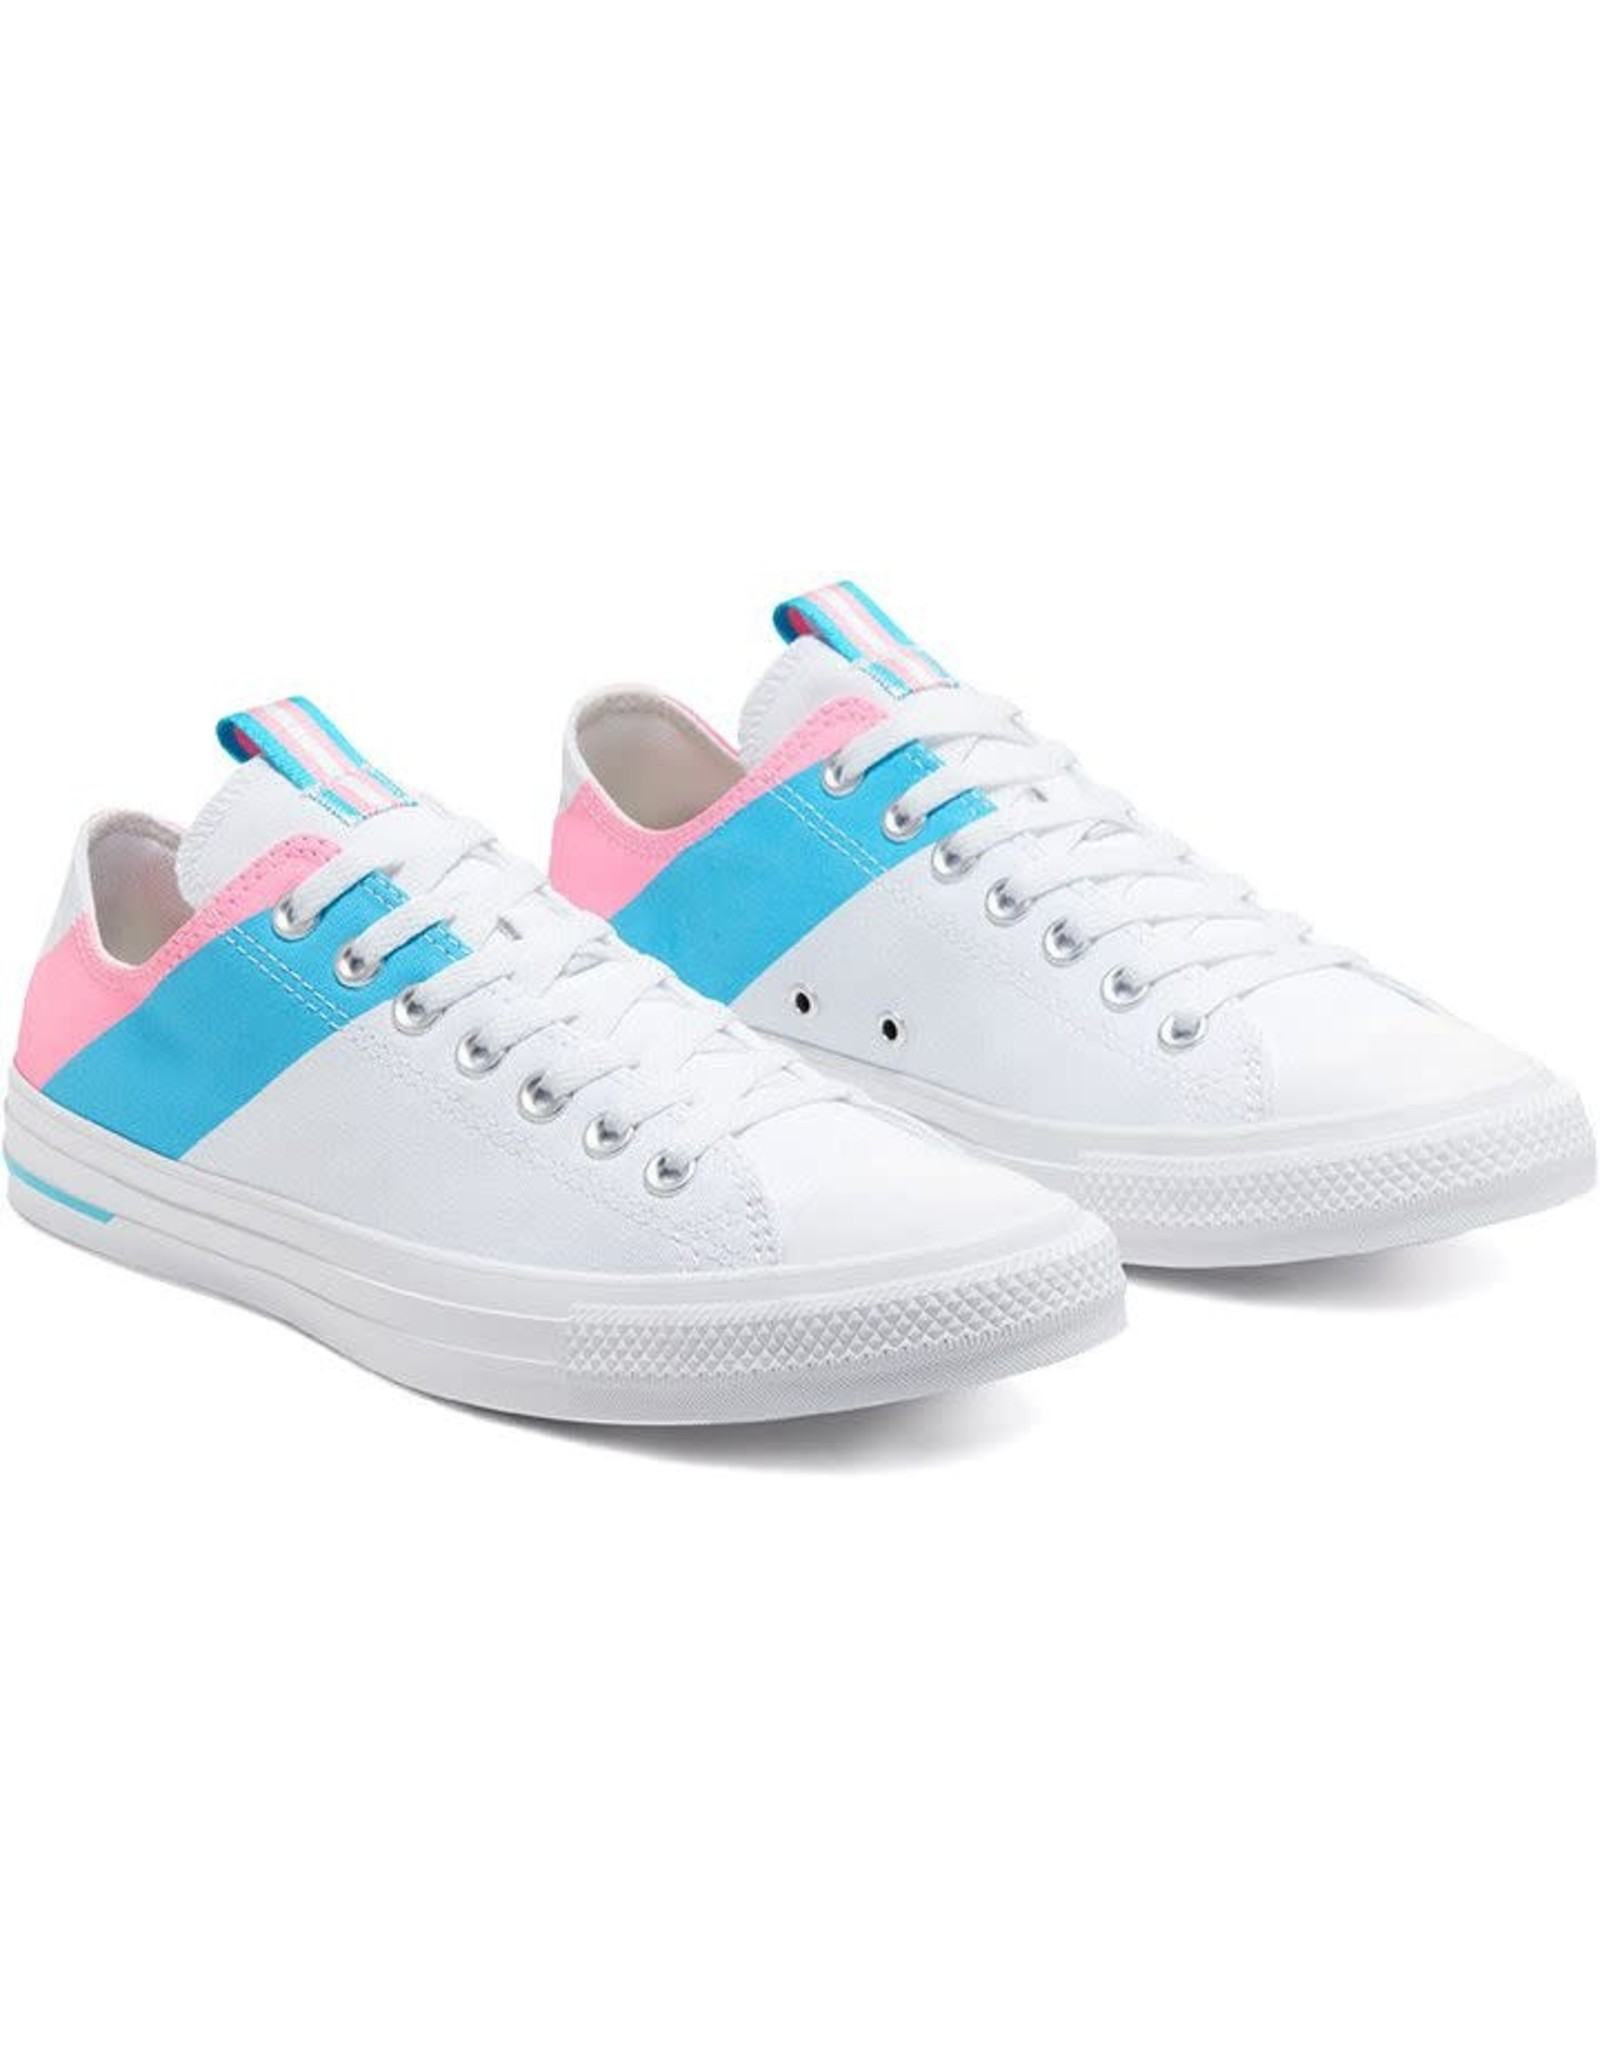 CONVERSE CHUCK TAYLOR OX WHITE/90S PINK/GNARLY BLUE C14TRA-167760C